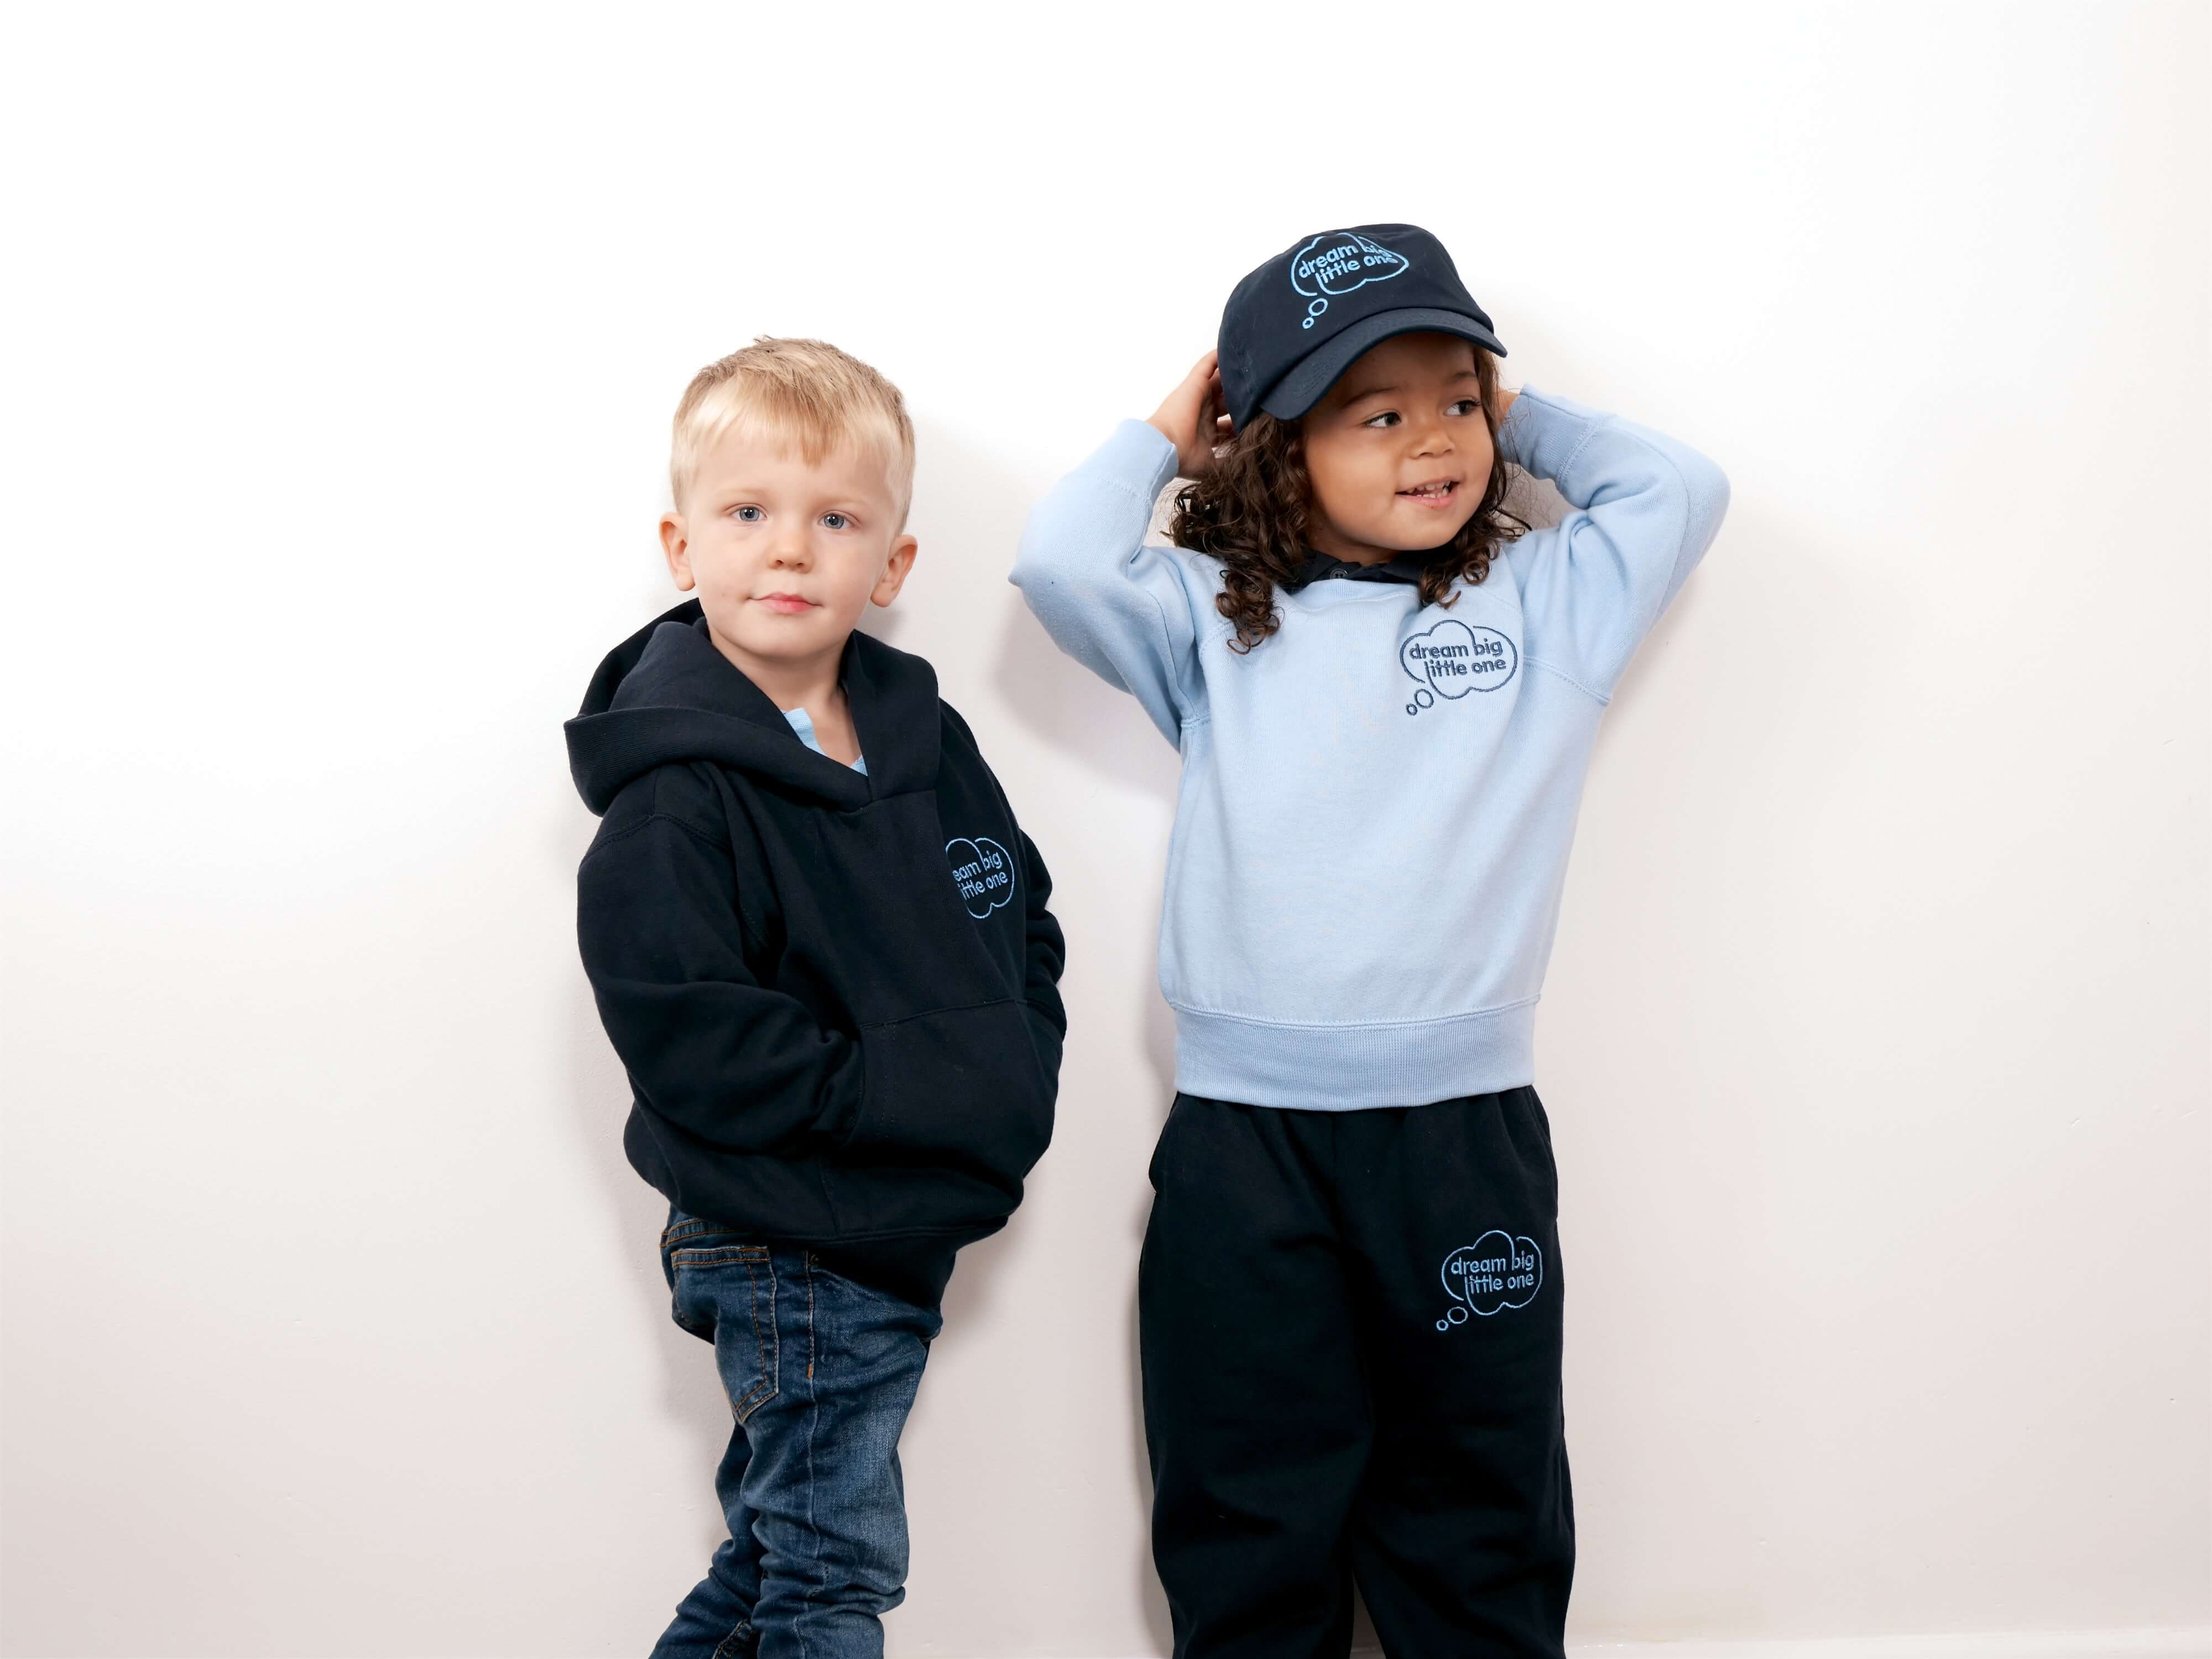 Image of two children wearing a Dream Big Little One day nursery shirt